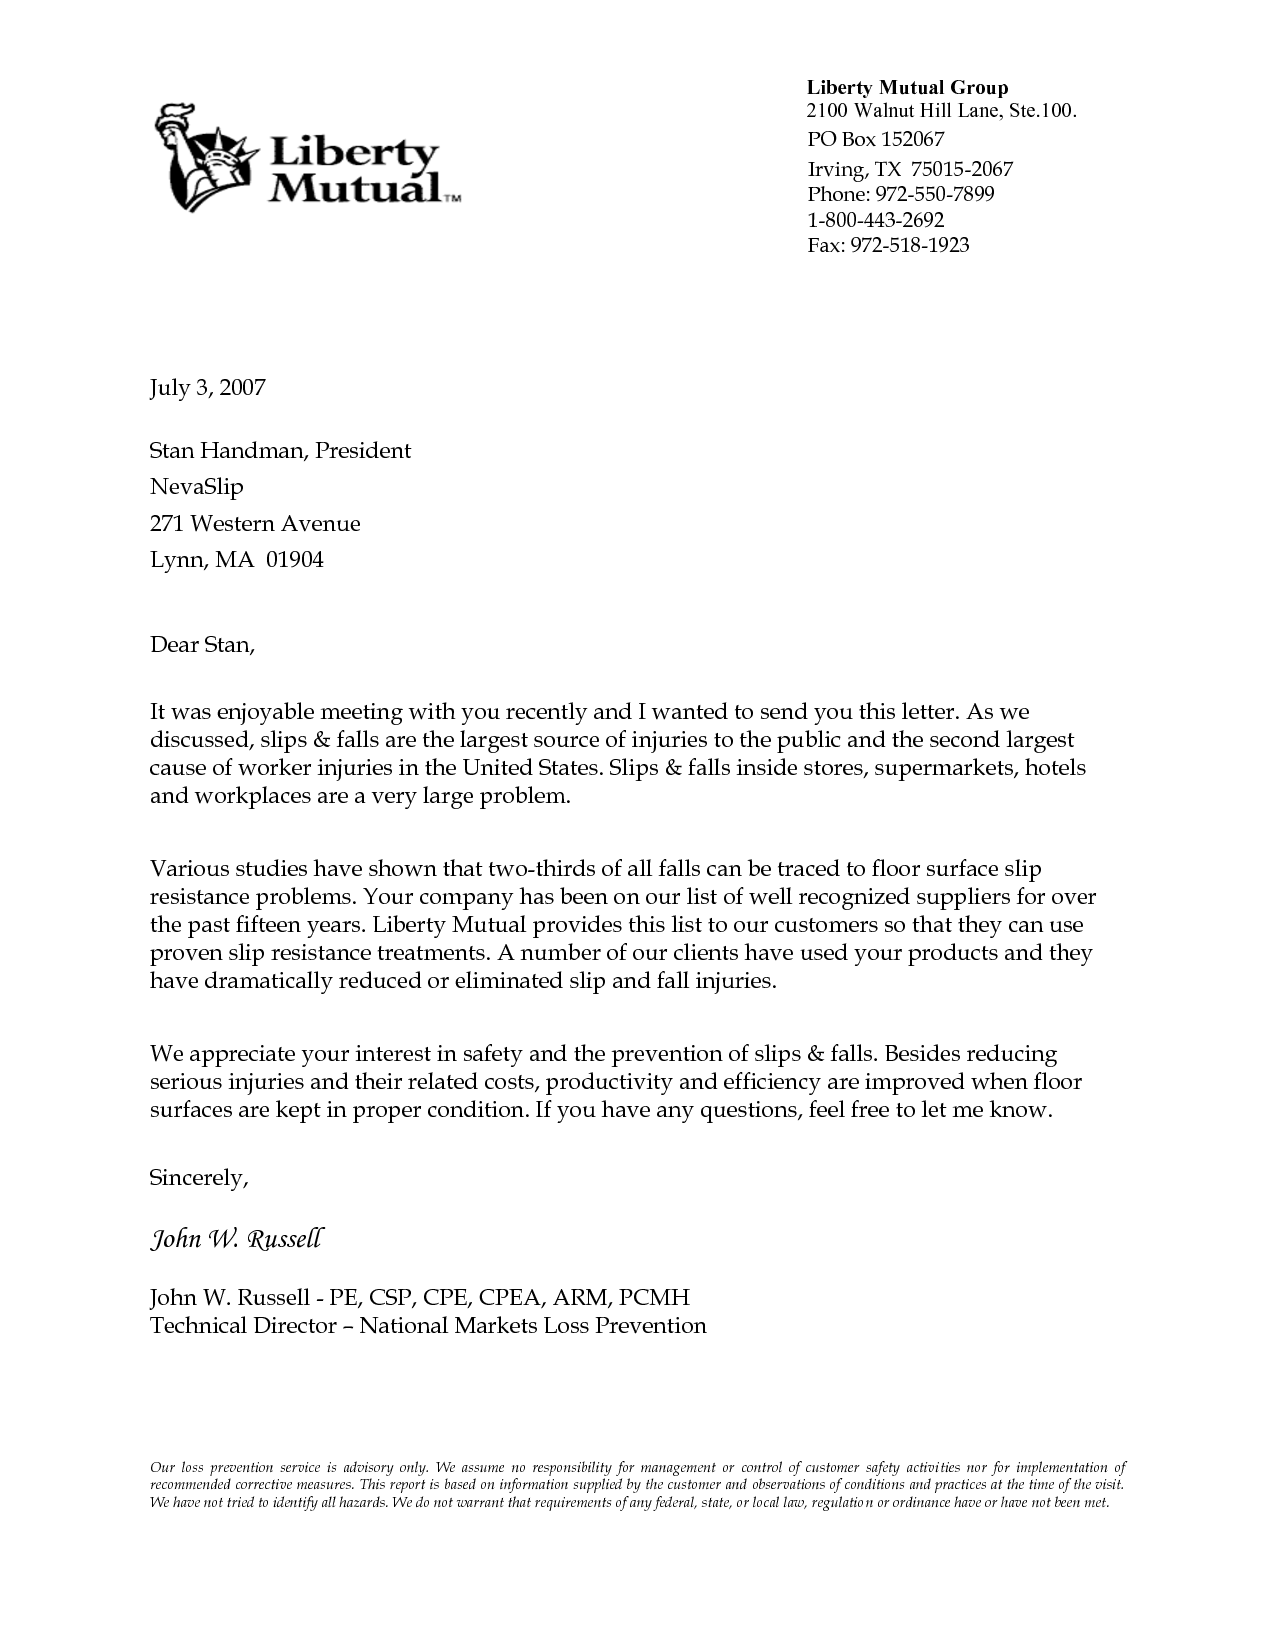 Business Letter Templates Grude Interpretomics Co